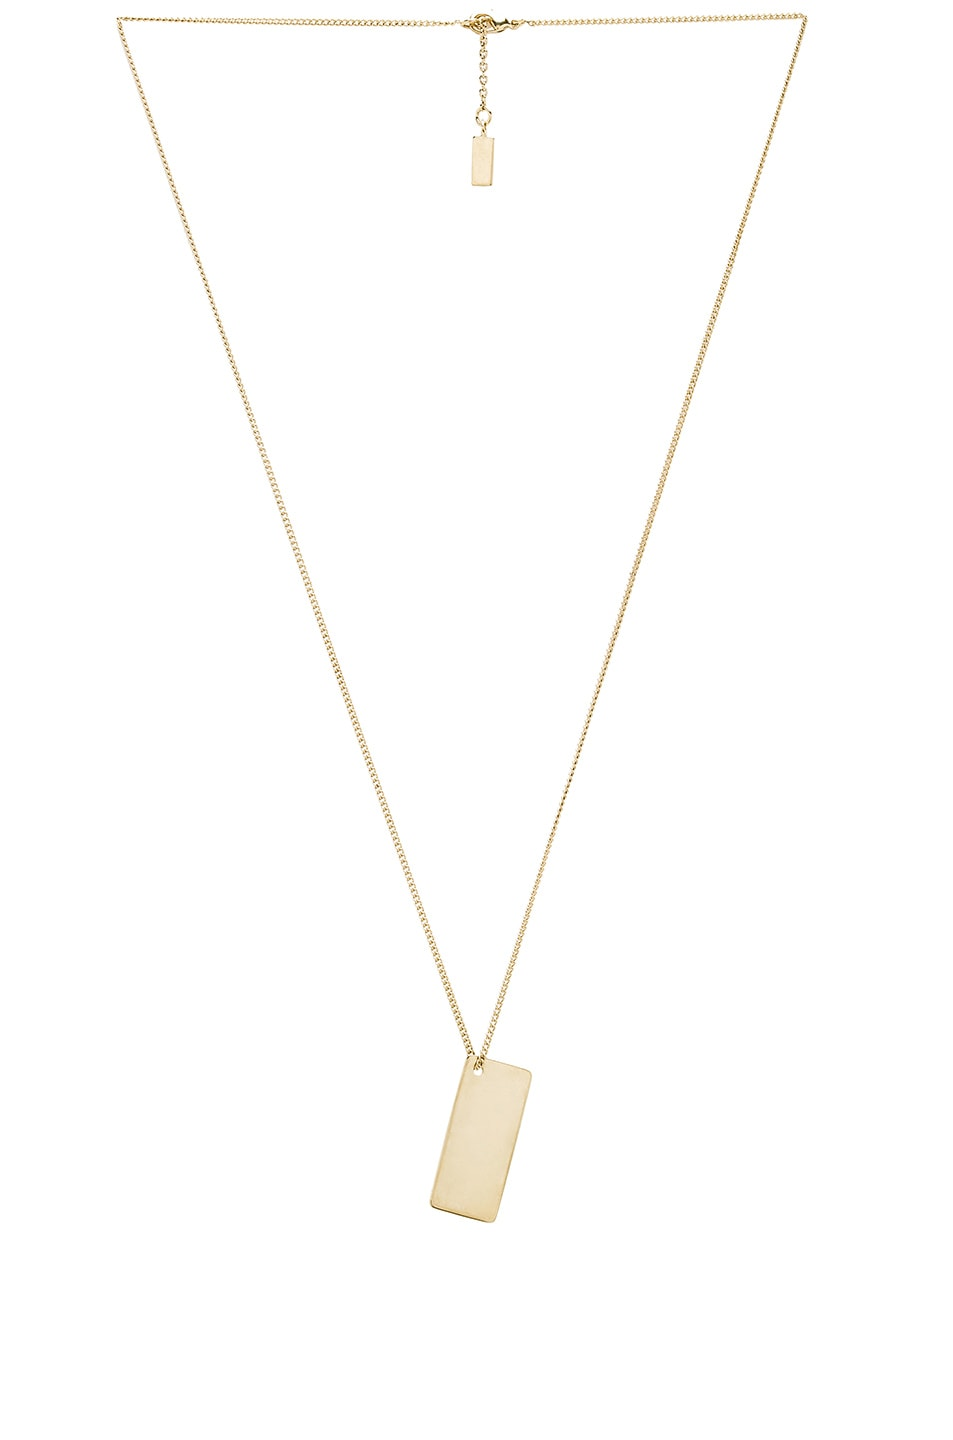 curtis apc products gold webshop necklace nomad